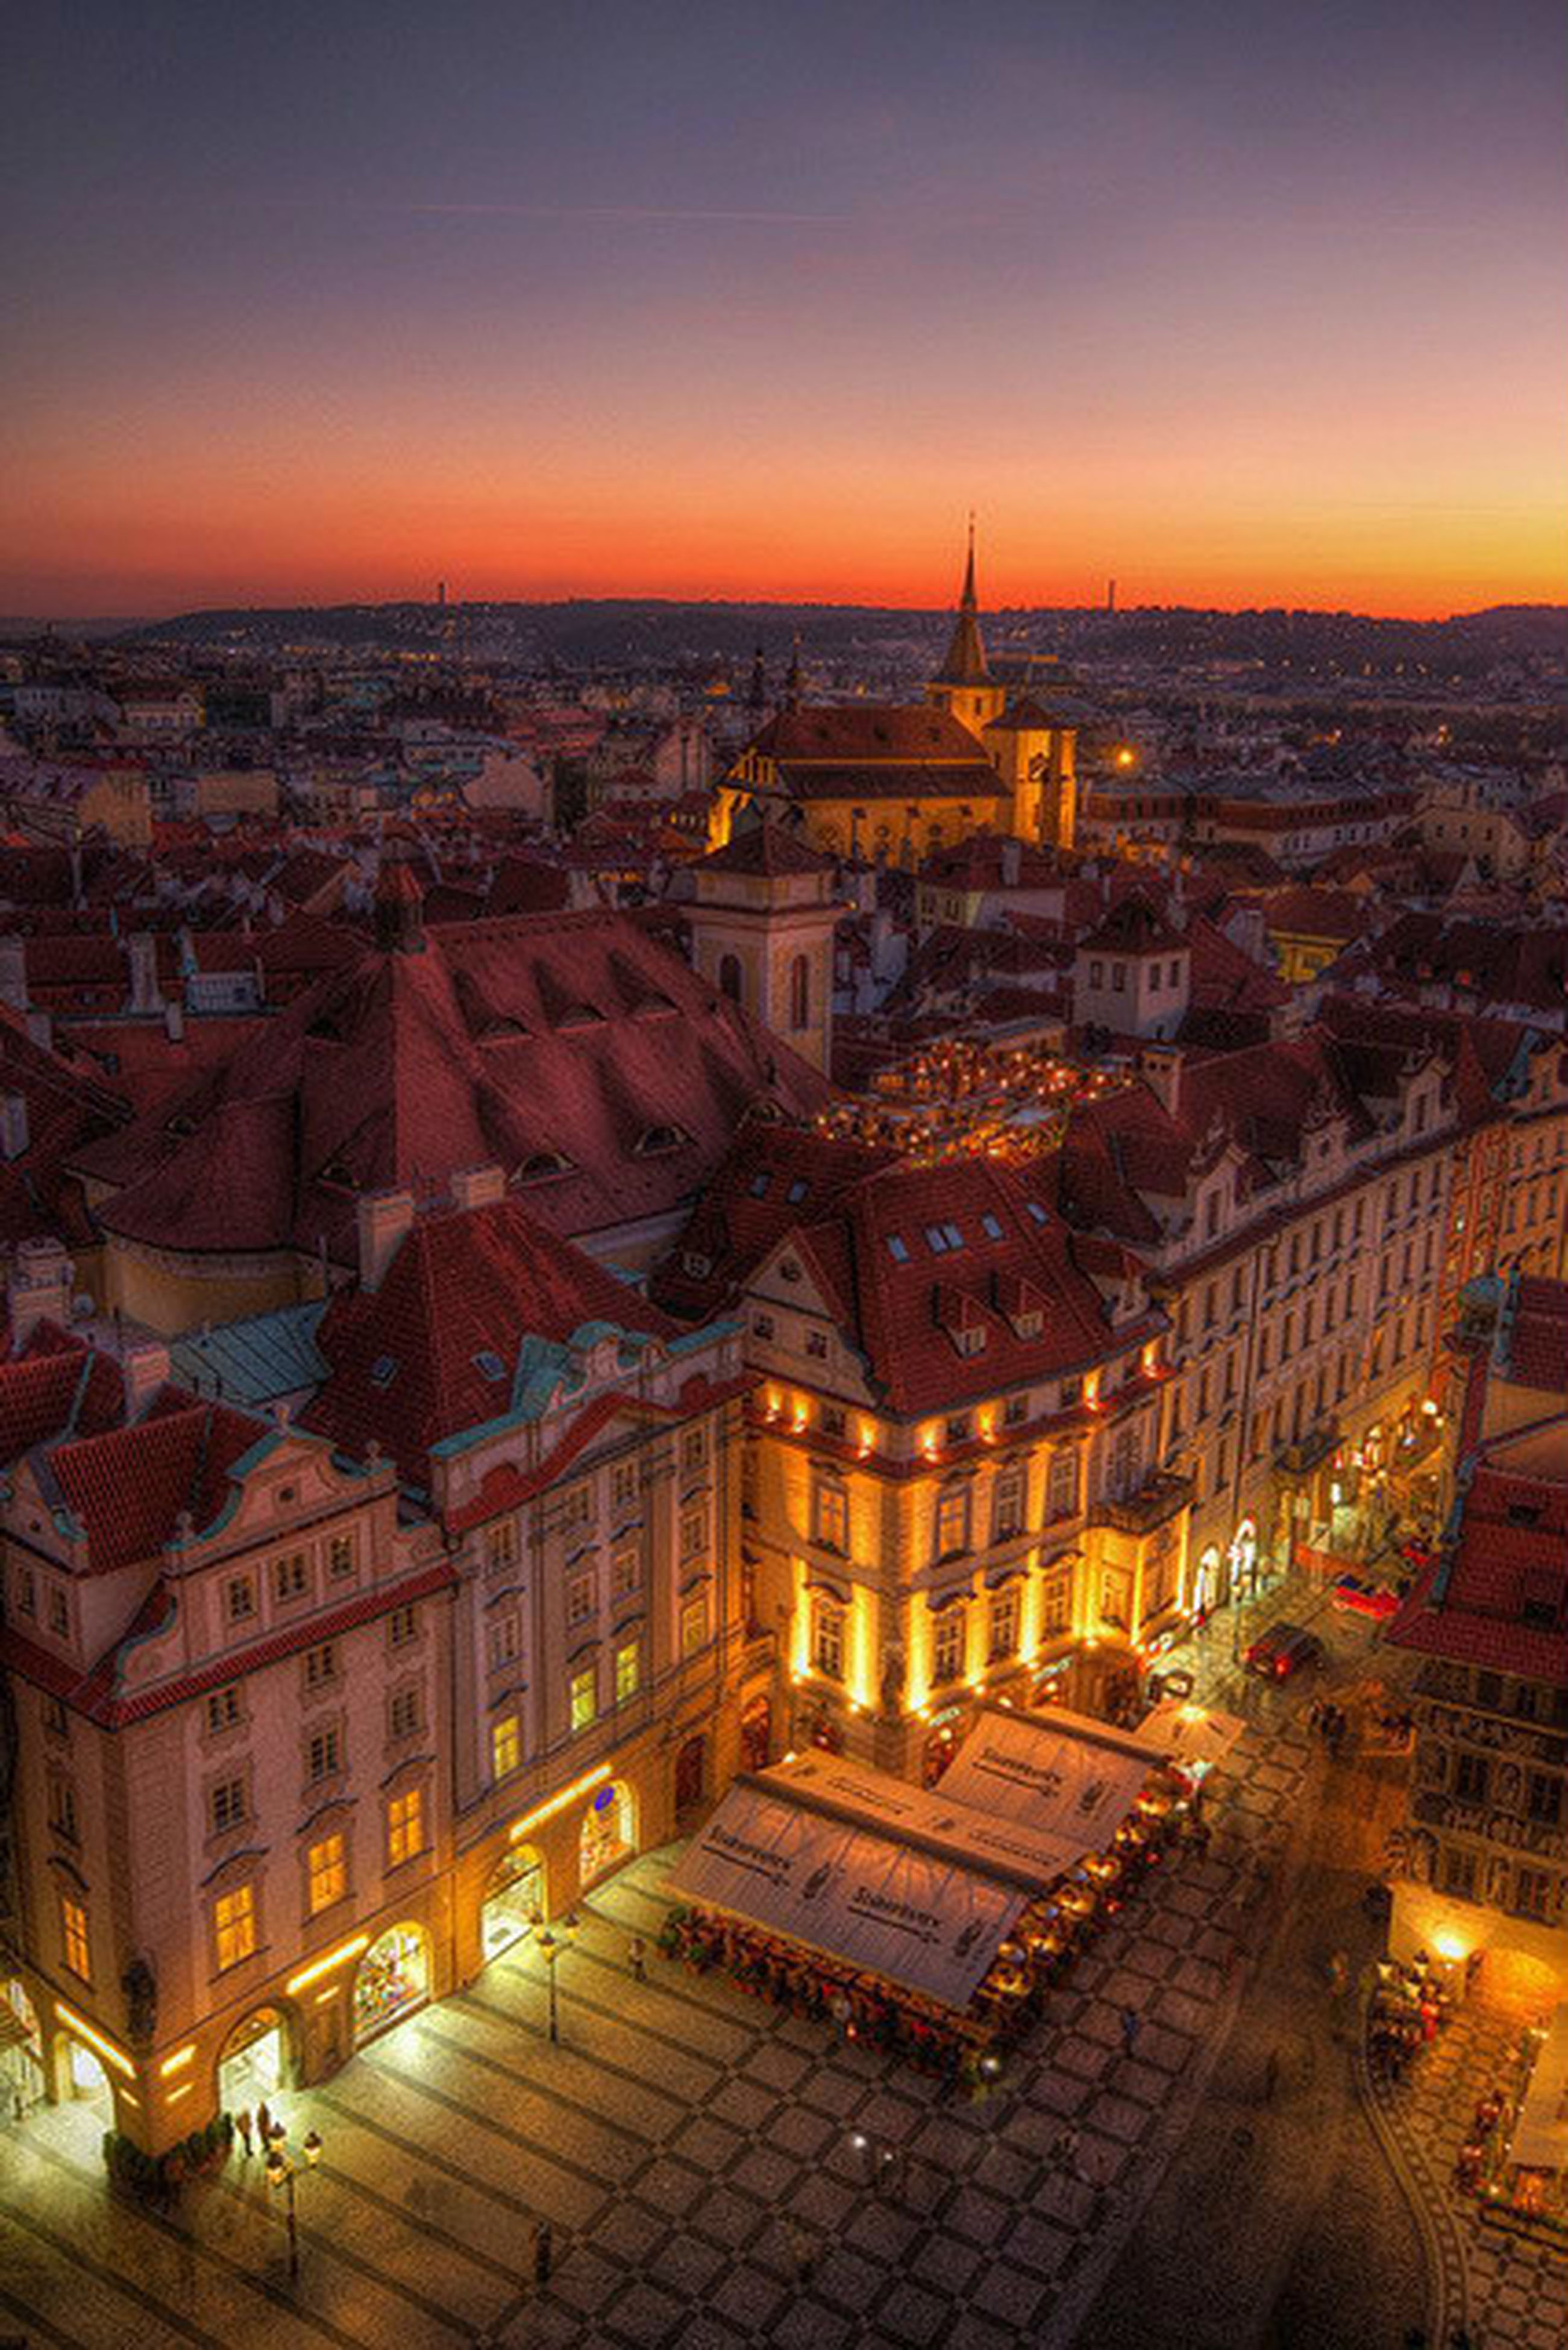 architecture, building exterior, built structure, cityscape, city, high angle view, crowded, residential district, sunset, residential building, illuminated, city life, residential structure, sky, travel destinations, capital cities, famous place, tower, travel, dusk